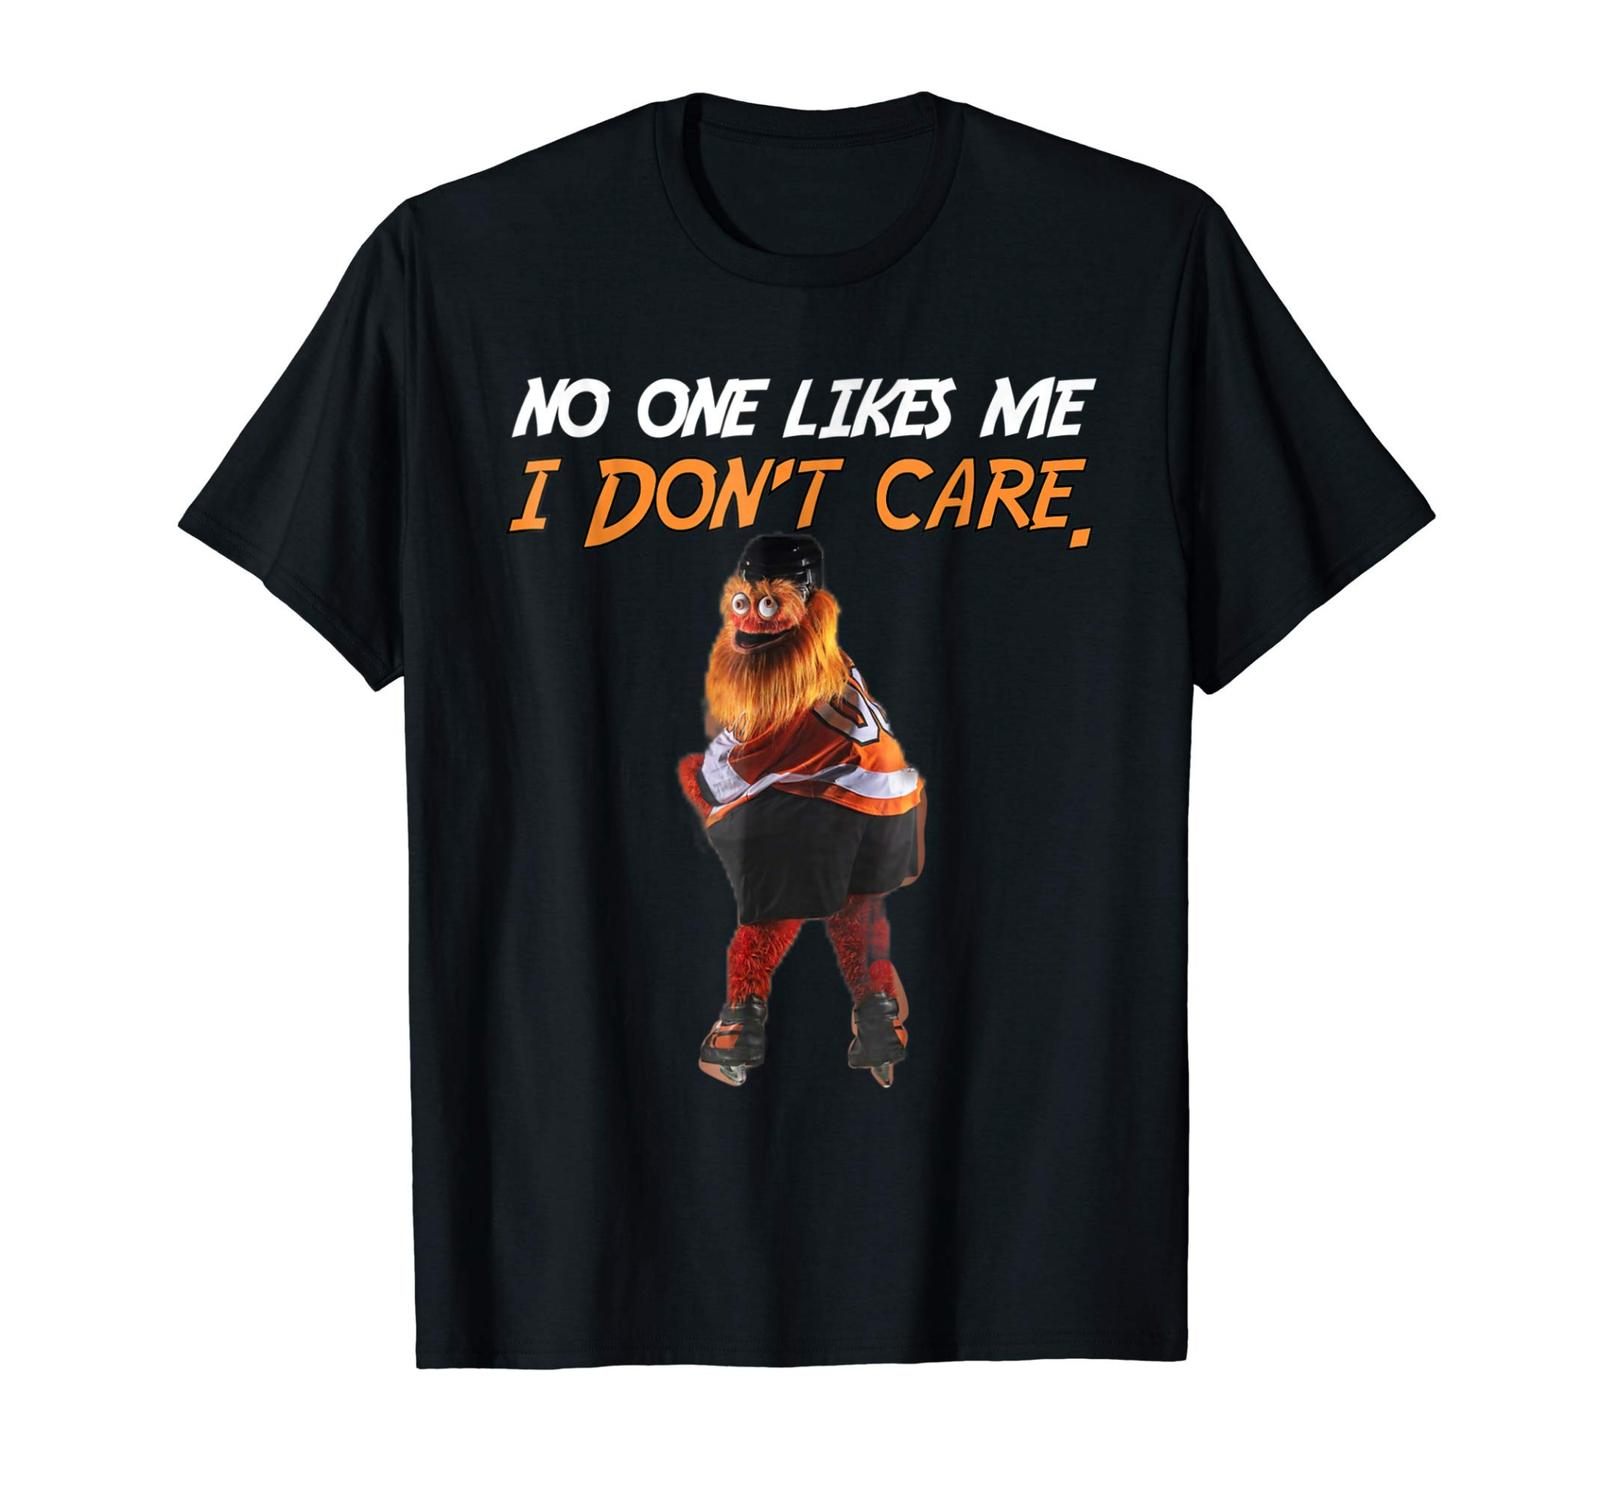 44f3d14b0c9 No One Likes Me I Dont Care Philly Mascot Gritty T Shirt Black Cotton Men M  3XL O Neck Sunlight Men T Shirt Top Tee Find A Shirt Shirts T Shirts From  ...